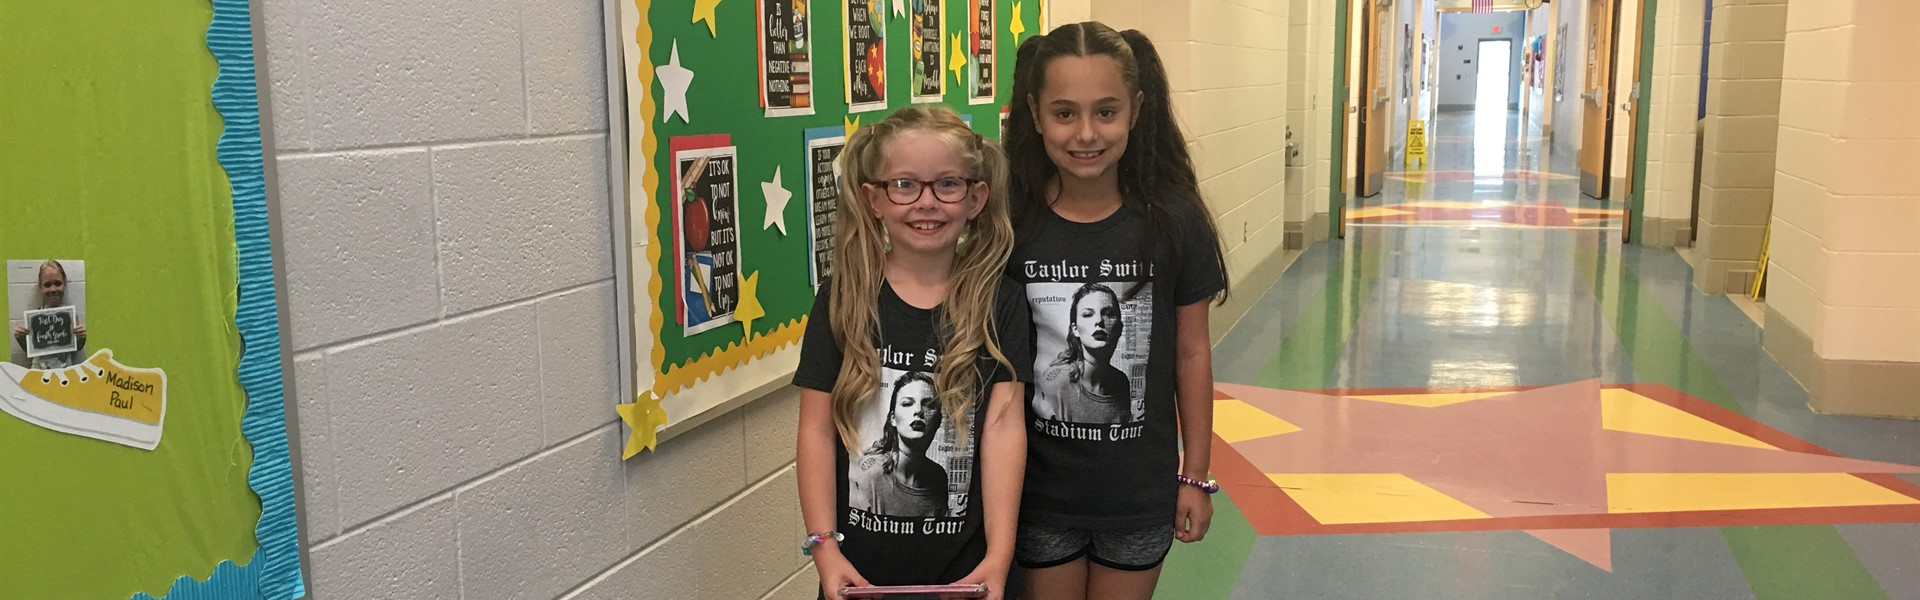 "WCIS Spirit Week-Promoting Good Attendance-""Twinning Tuesday"" because attendance is twice as important!!!"